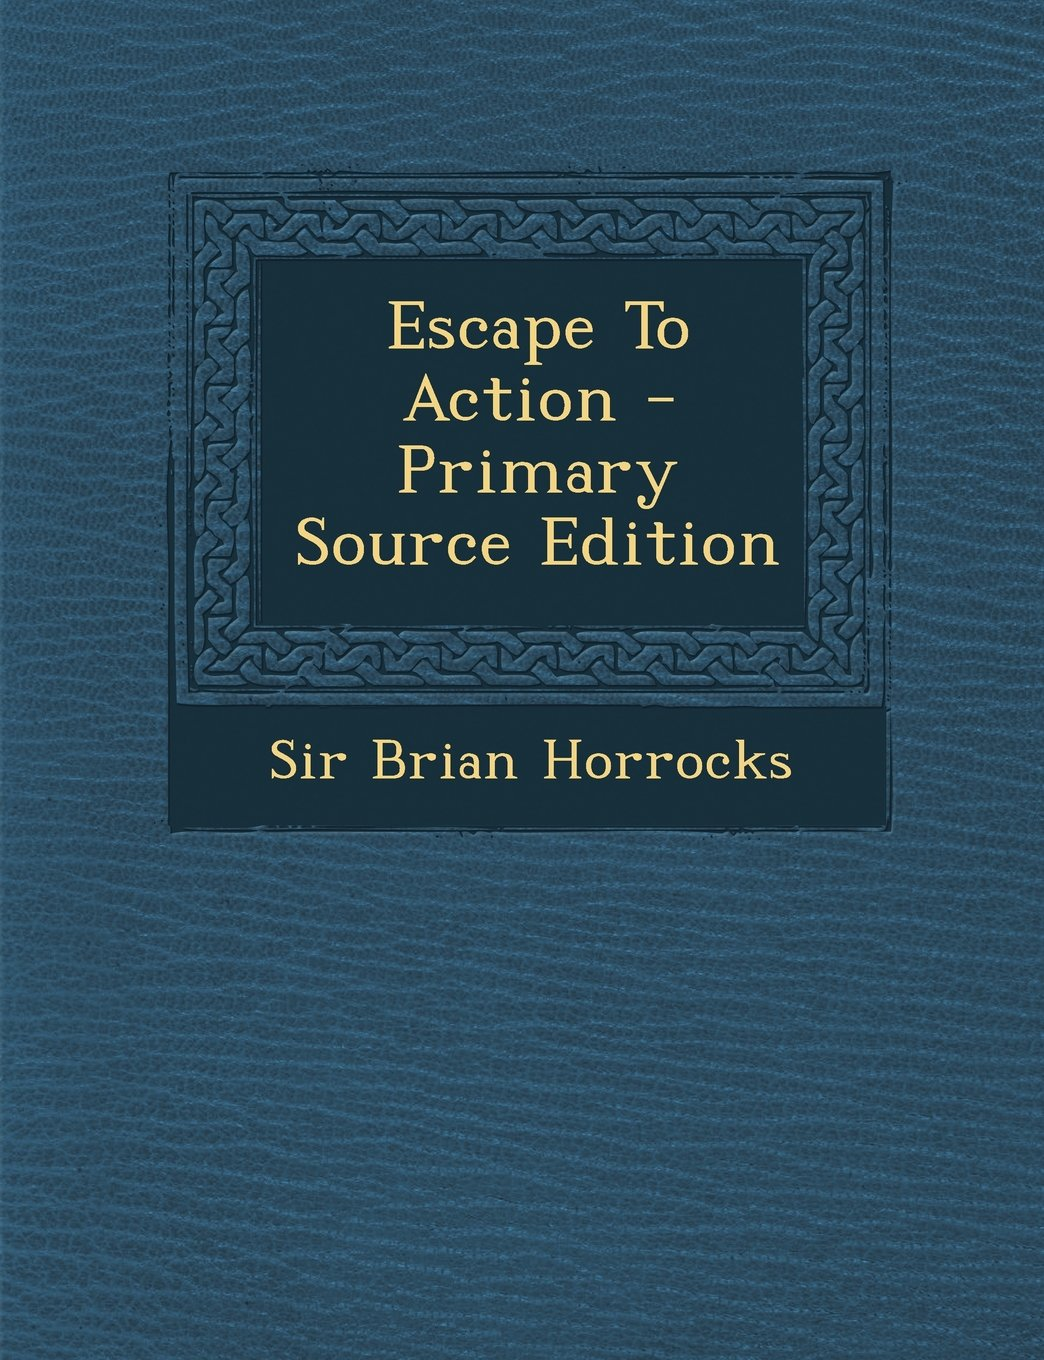 Download Escape To Action - Primary Source Edition PDF